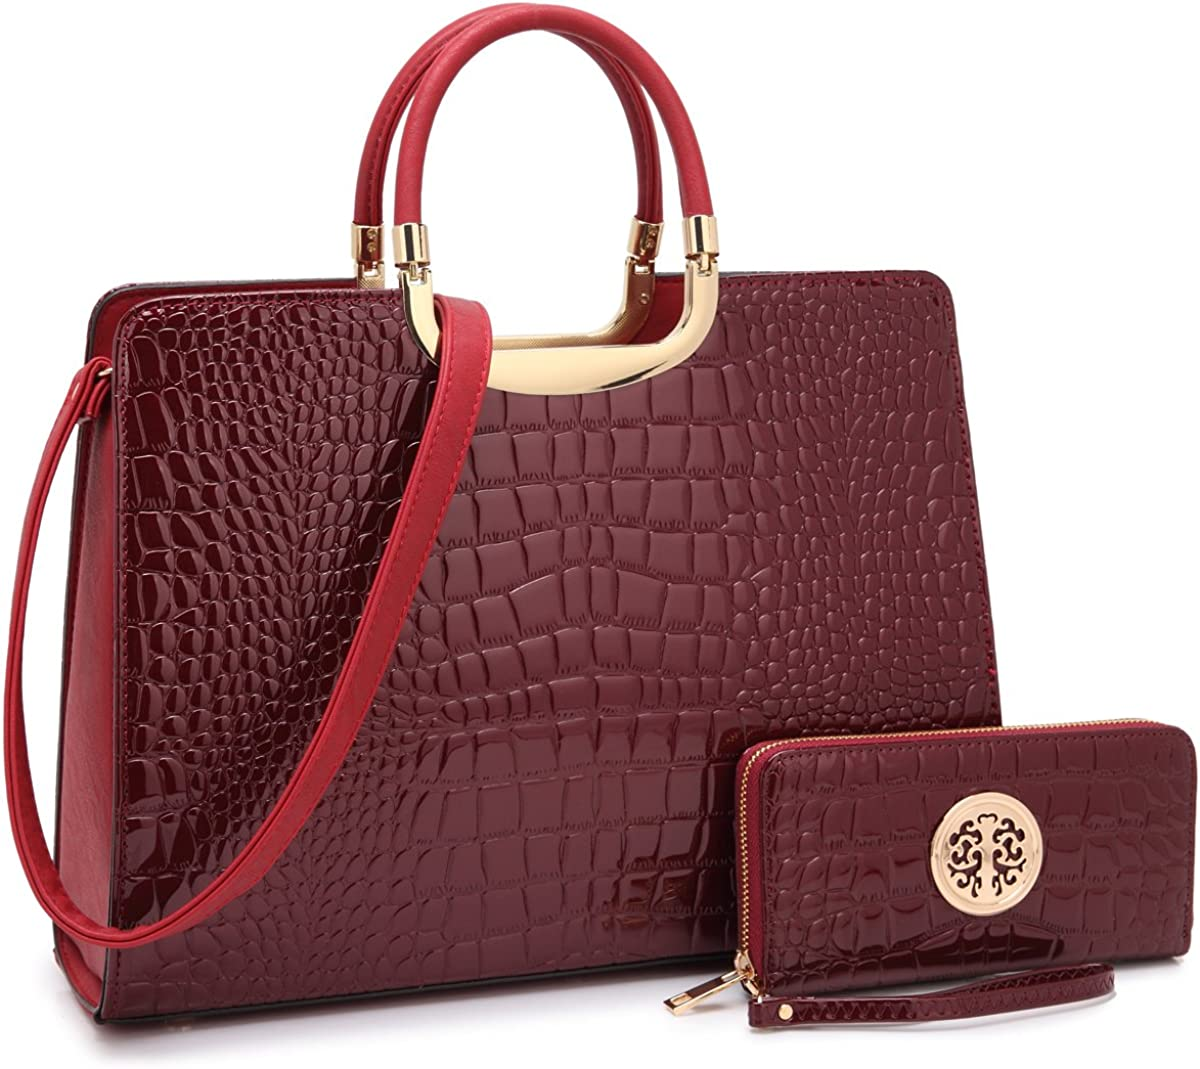 MKP Collection Beautiful Croco Leather Briefcase Computer Laptop Bag for Women Handbags Top Handle Satchel Purse Business Bag